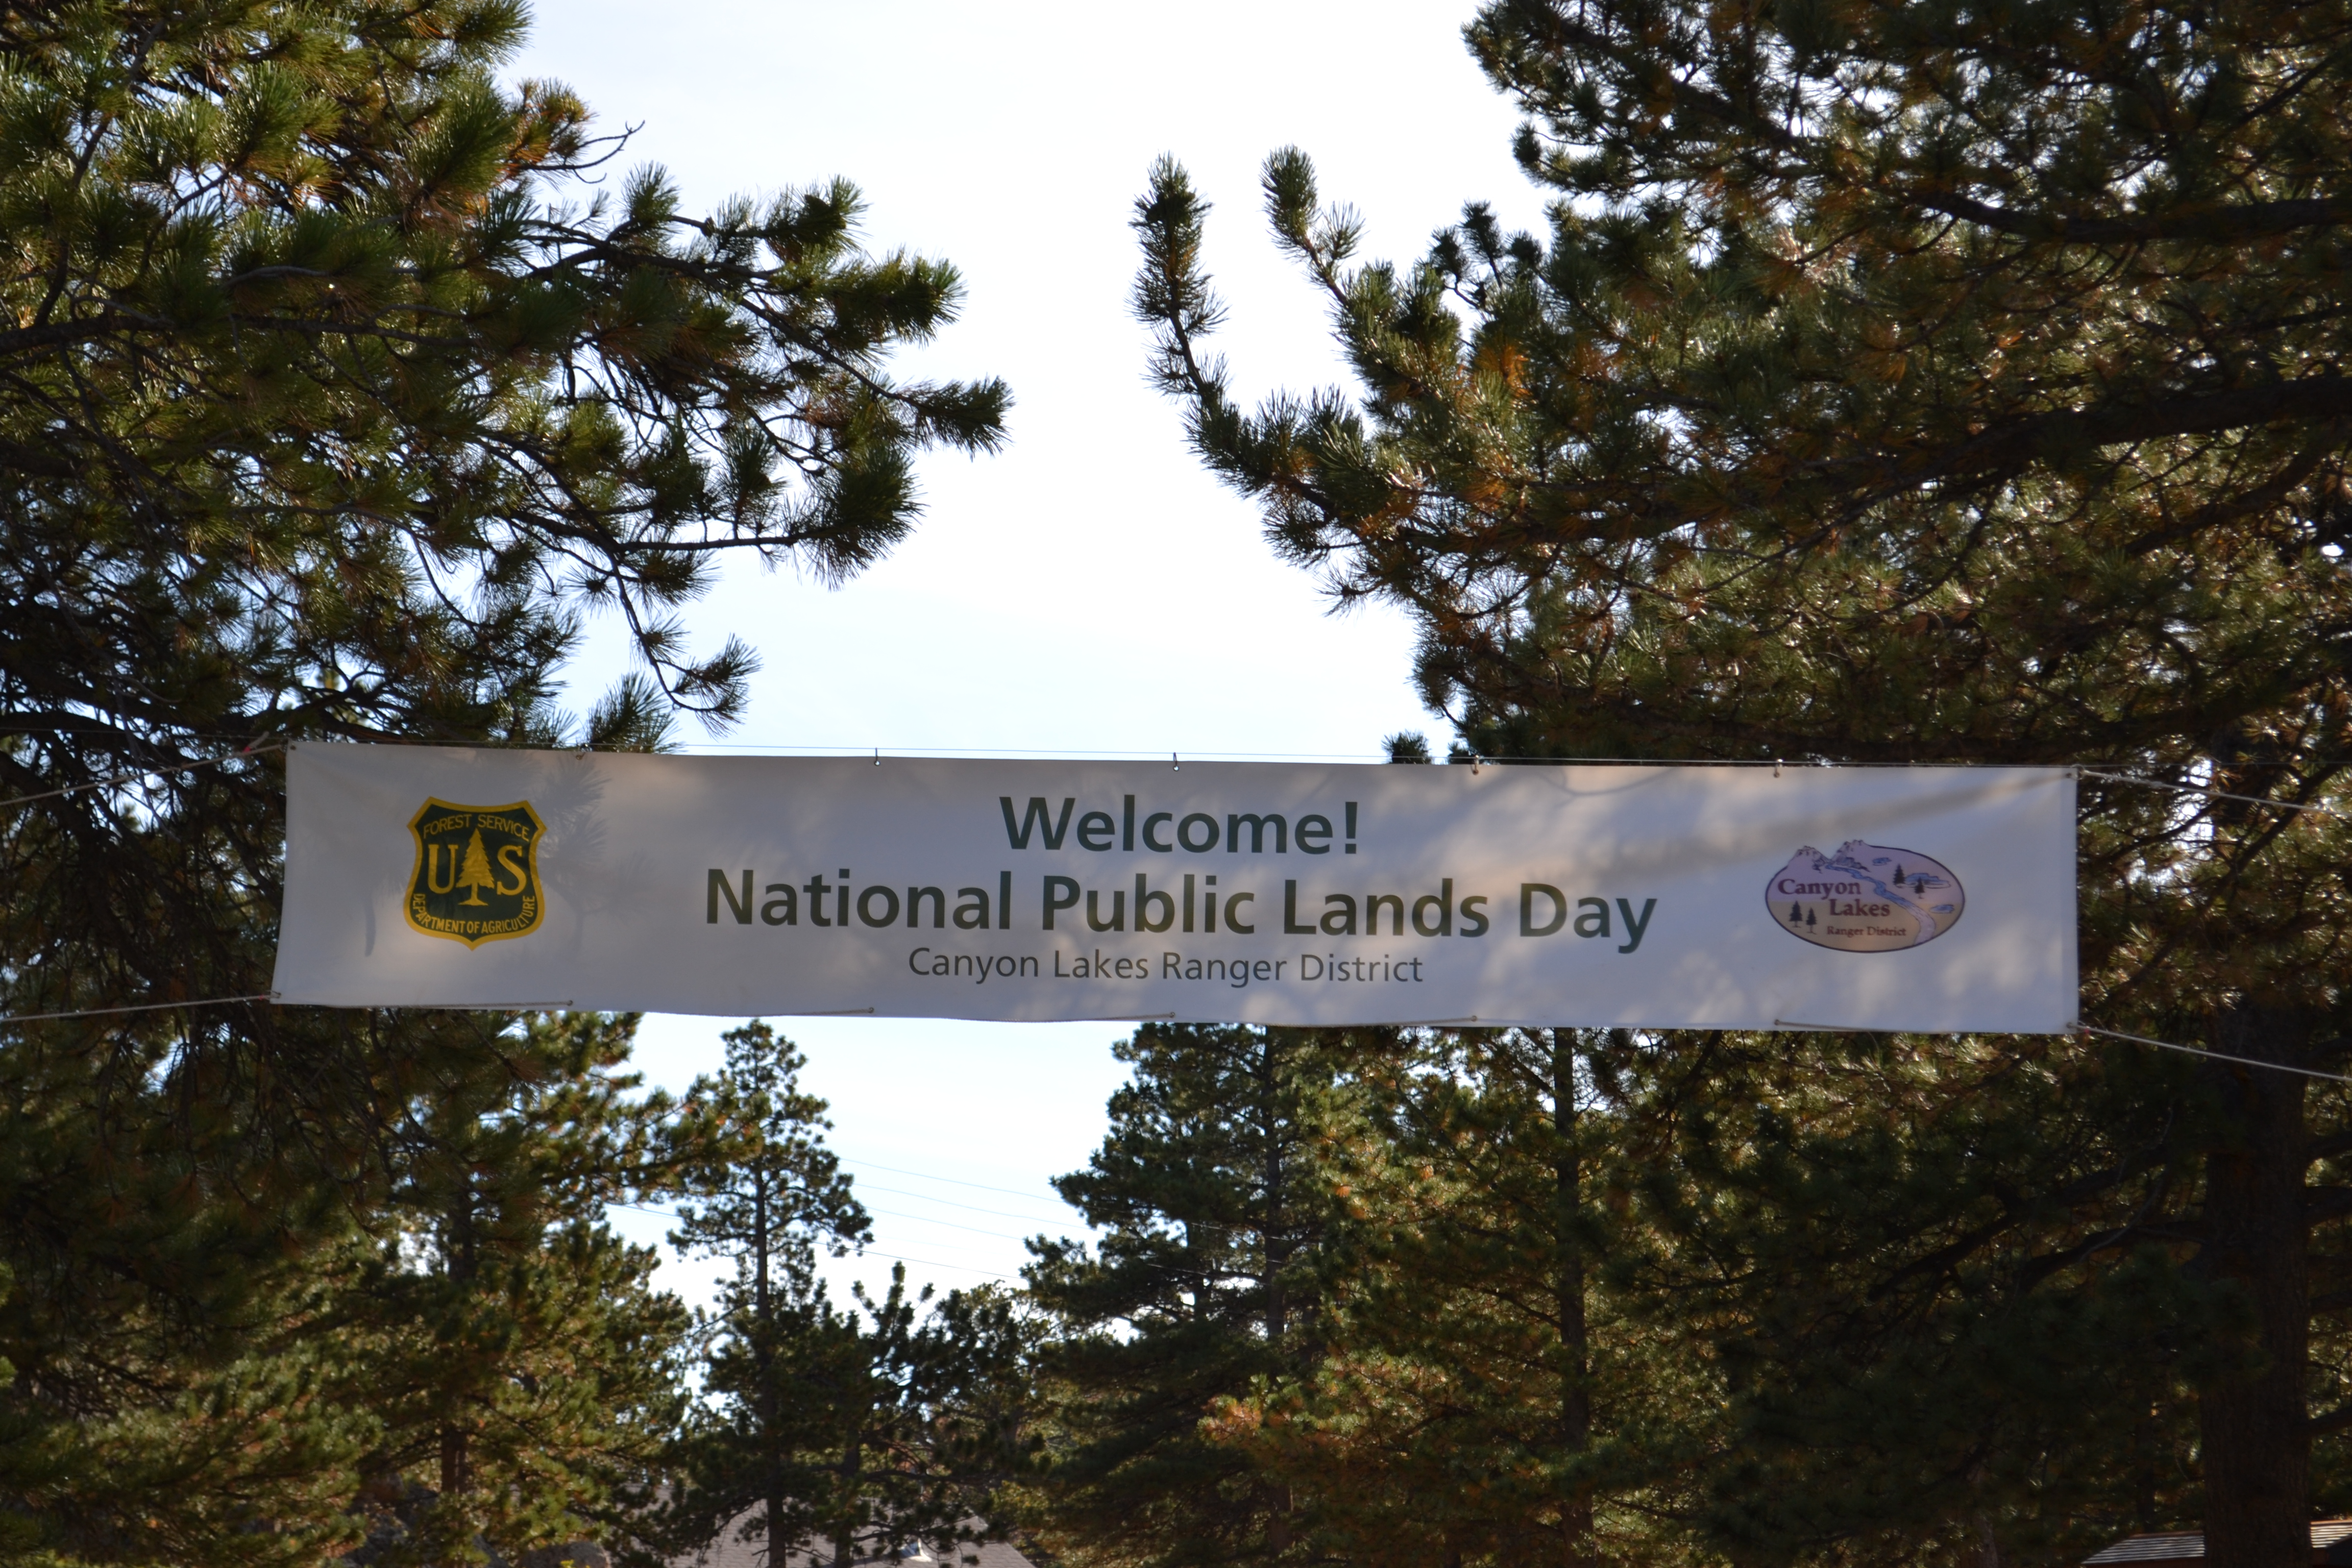 Large white banner hung between two trees with district name, two logos, and NPLD on it